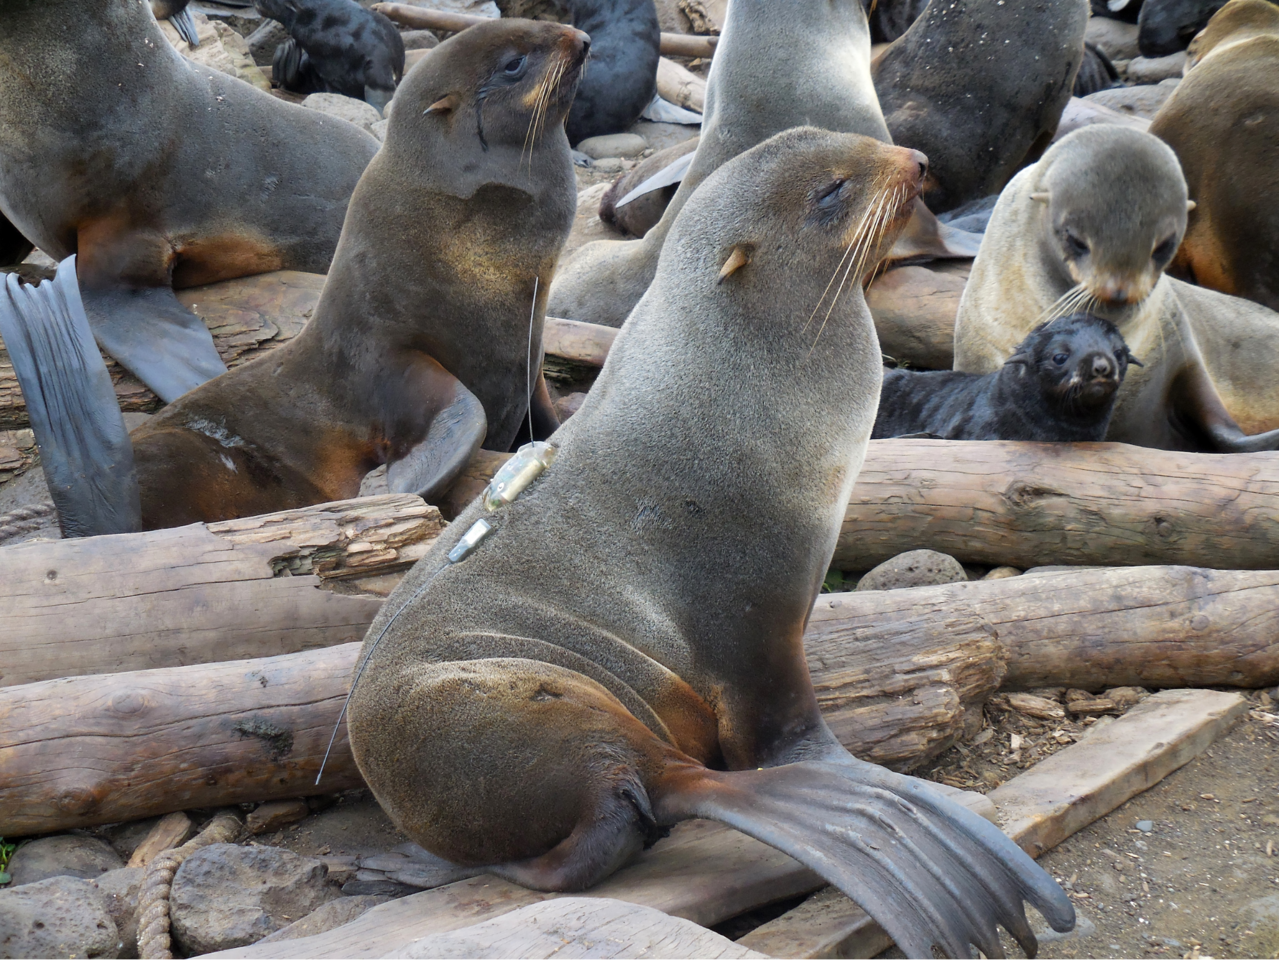 A female northern fur seal equipped with a satellite tag that will transmit her location at sea.